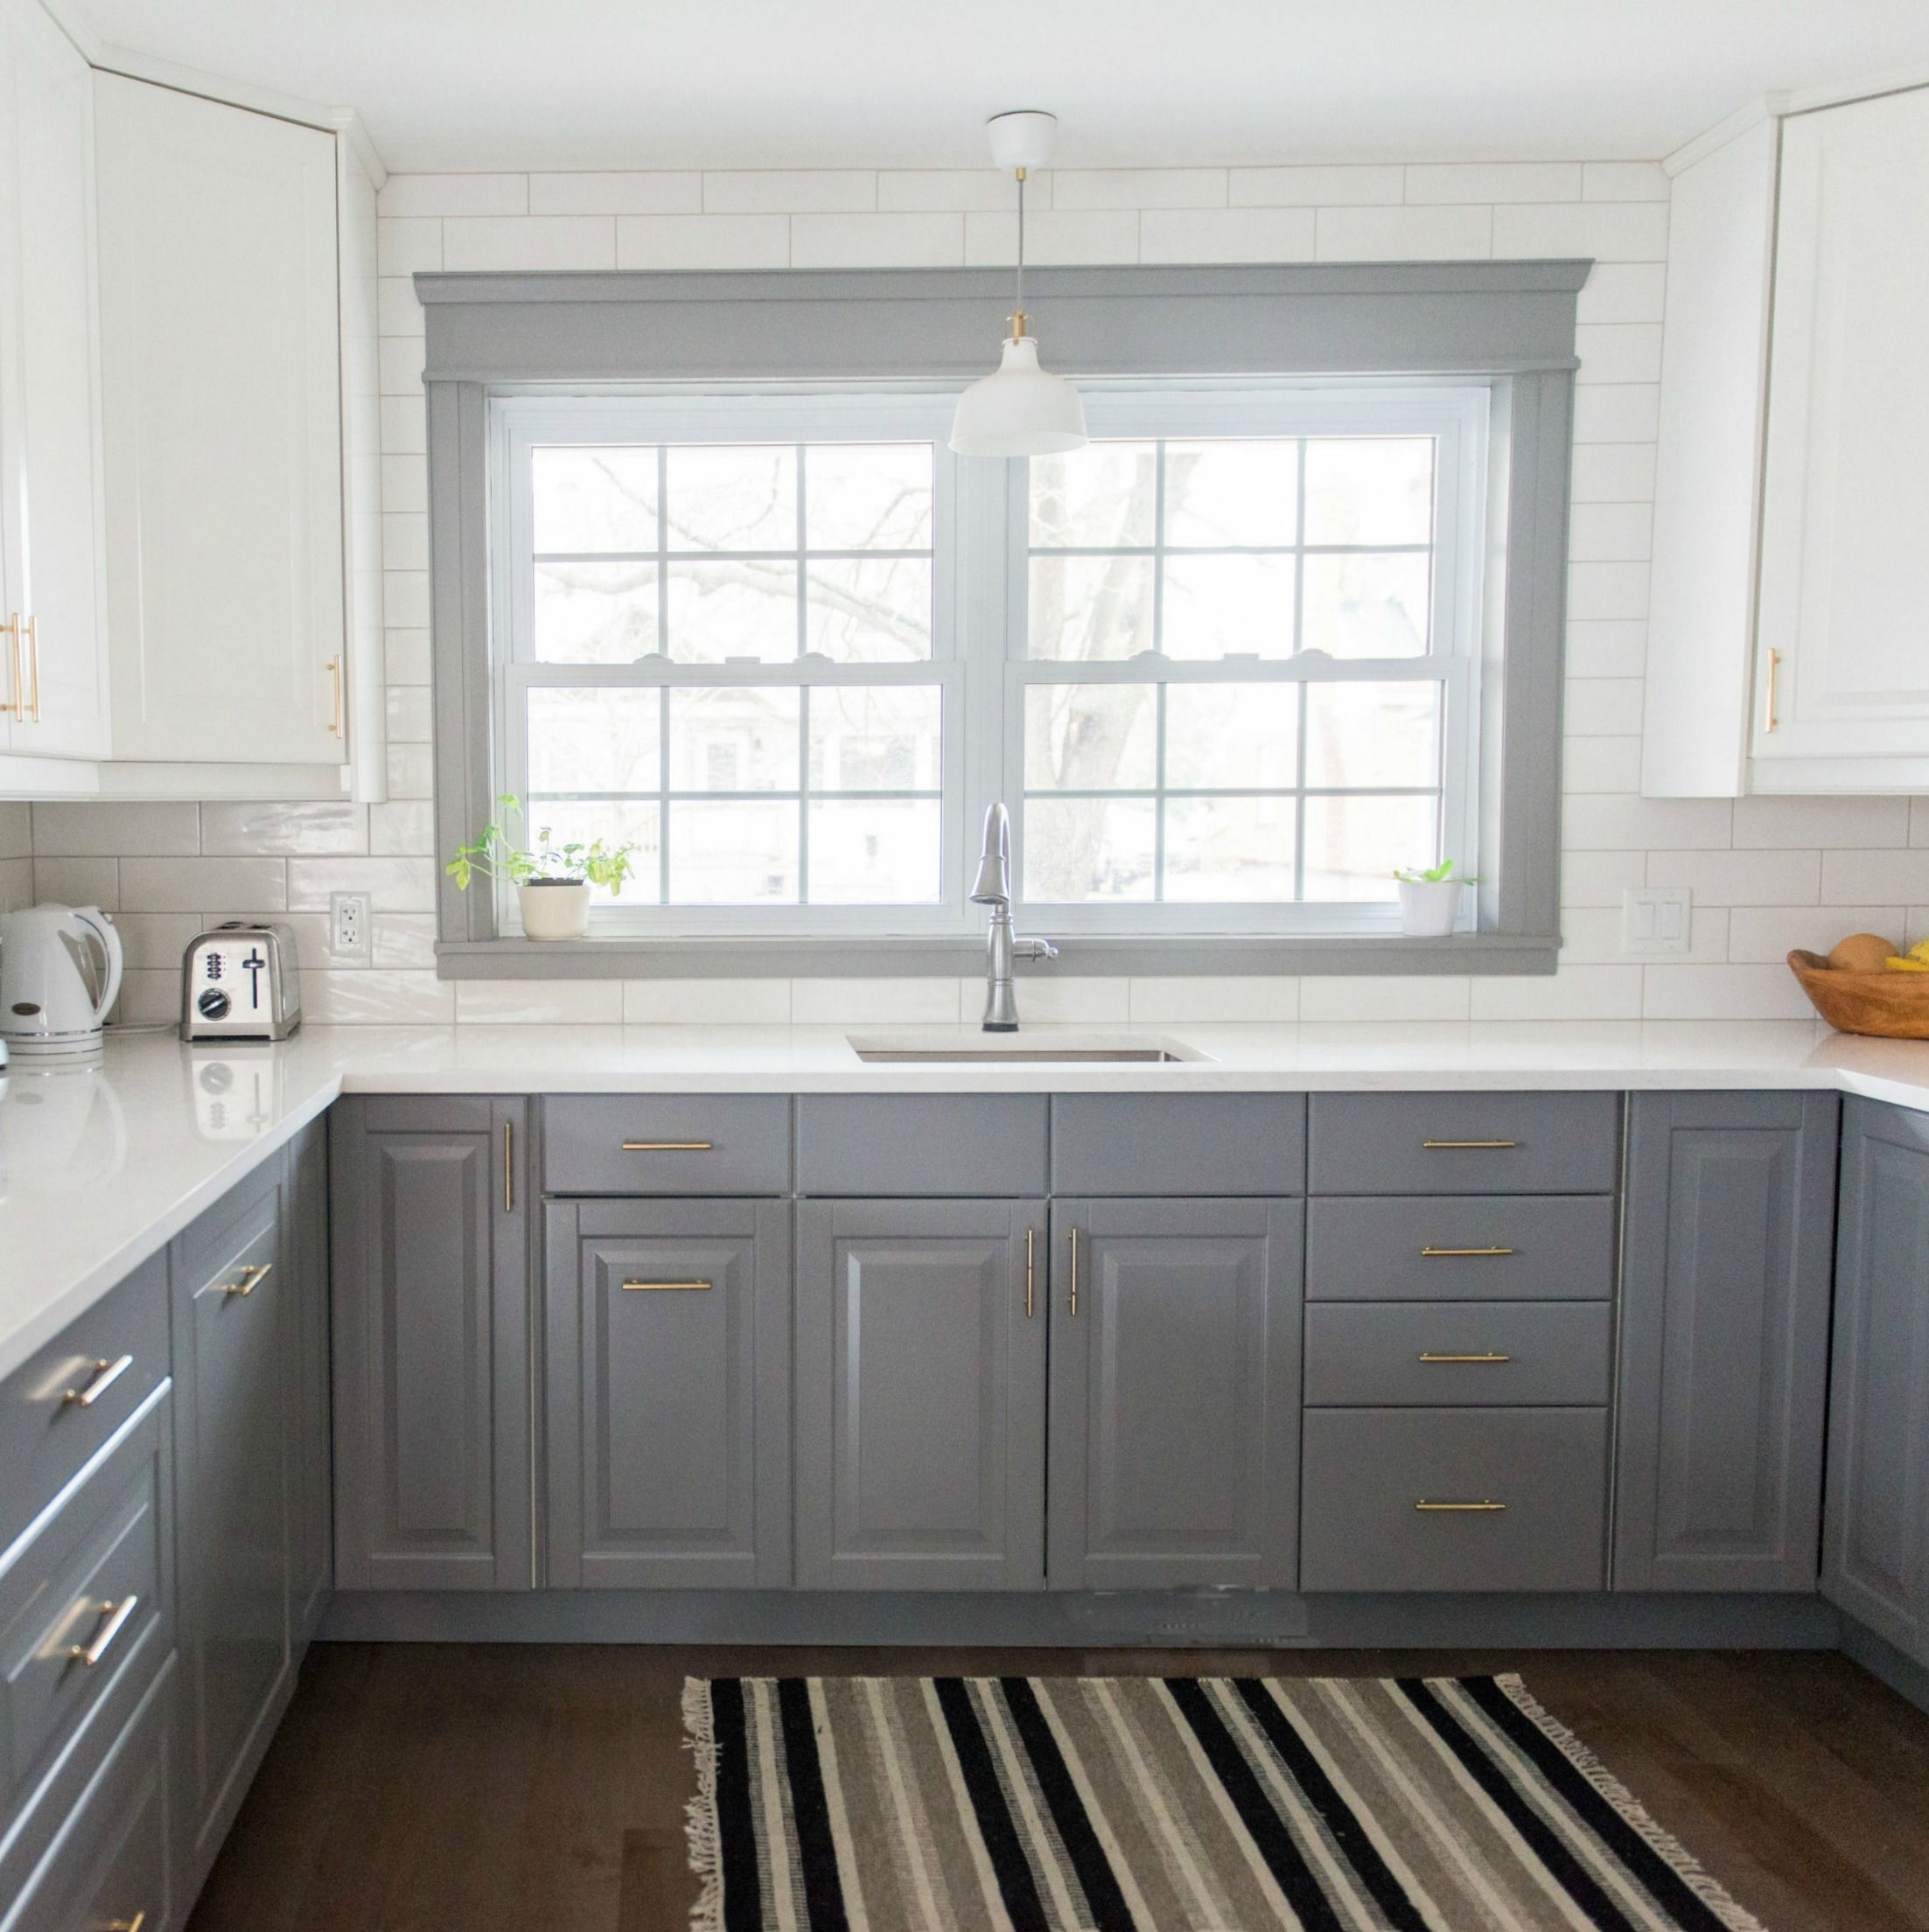 Ikea Kitchen Counter Wicker Chairs A Gray And White Transformation Kitchens With Marble Renovation Check Out This Two Toned Design Quartz Countertops Subway Tile Backsplash Gold Hardware